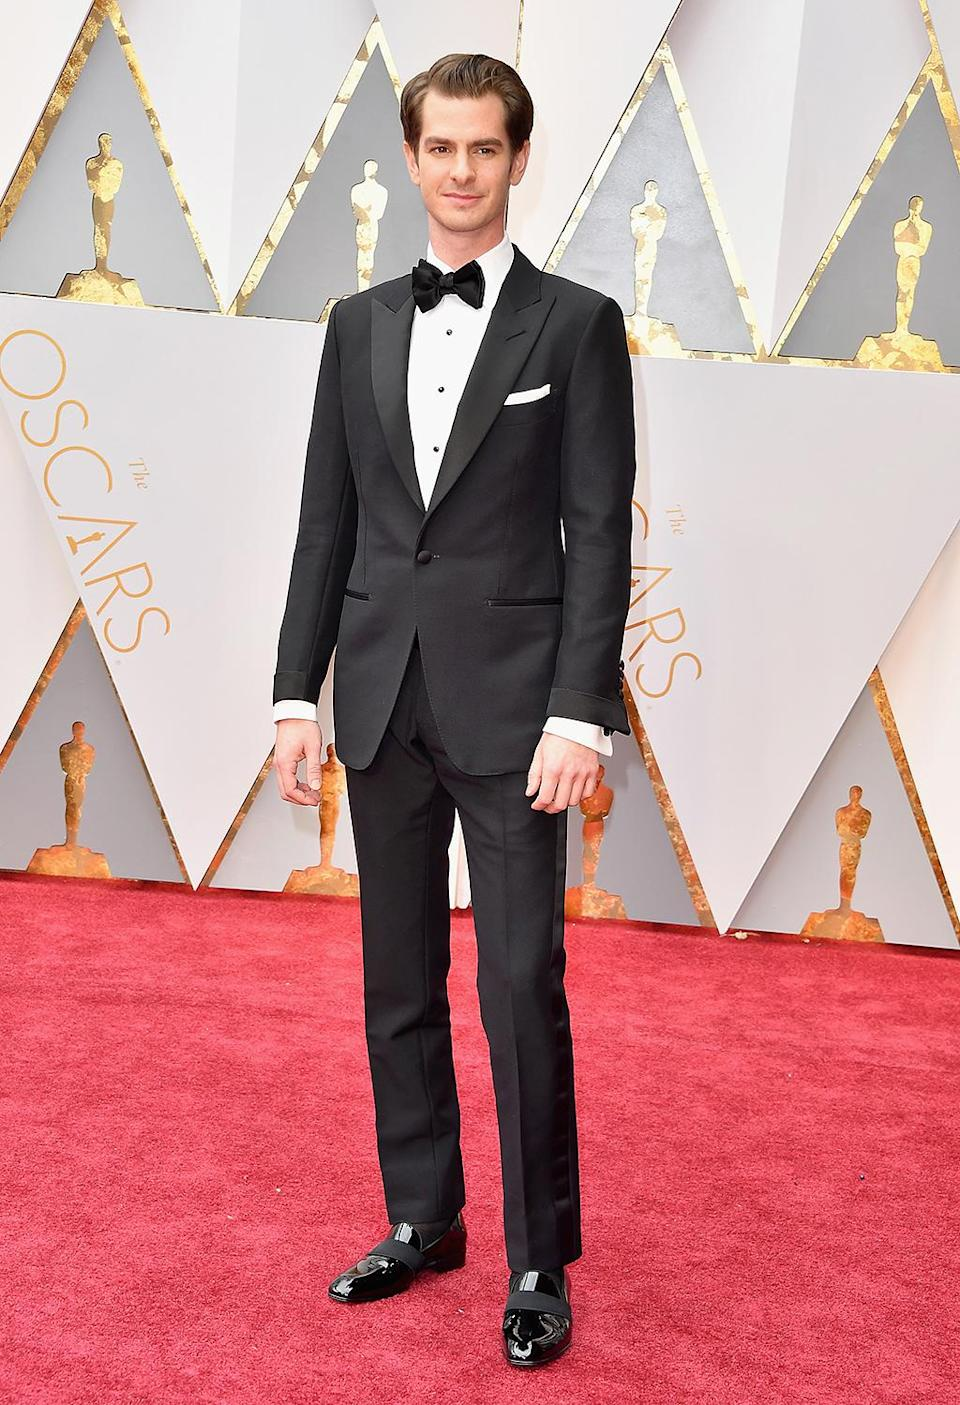 <p>Actor Andrew Garfield attends the 89th Annual Academy Awards at Hollywood & Highland Center on February 26, 2017 in Hollywood, California. (Photo by Steve Granitz/WireImage) </p>